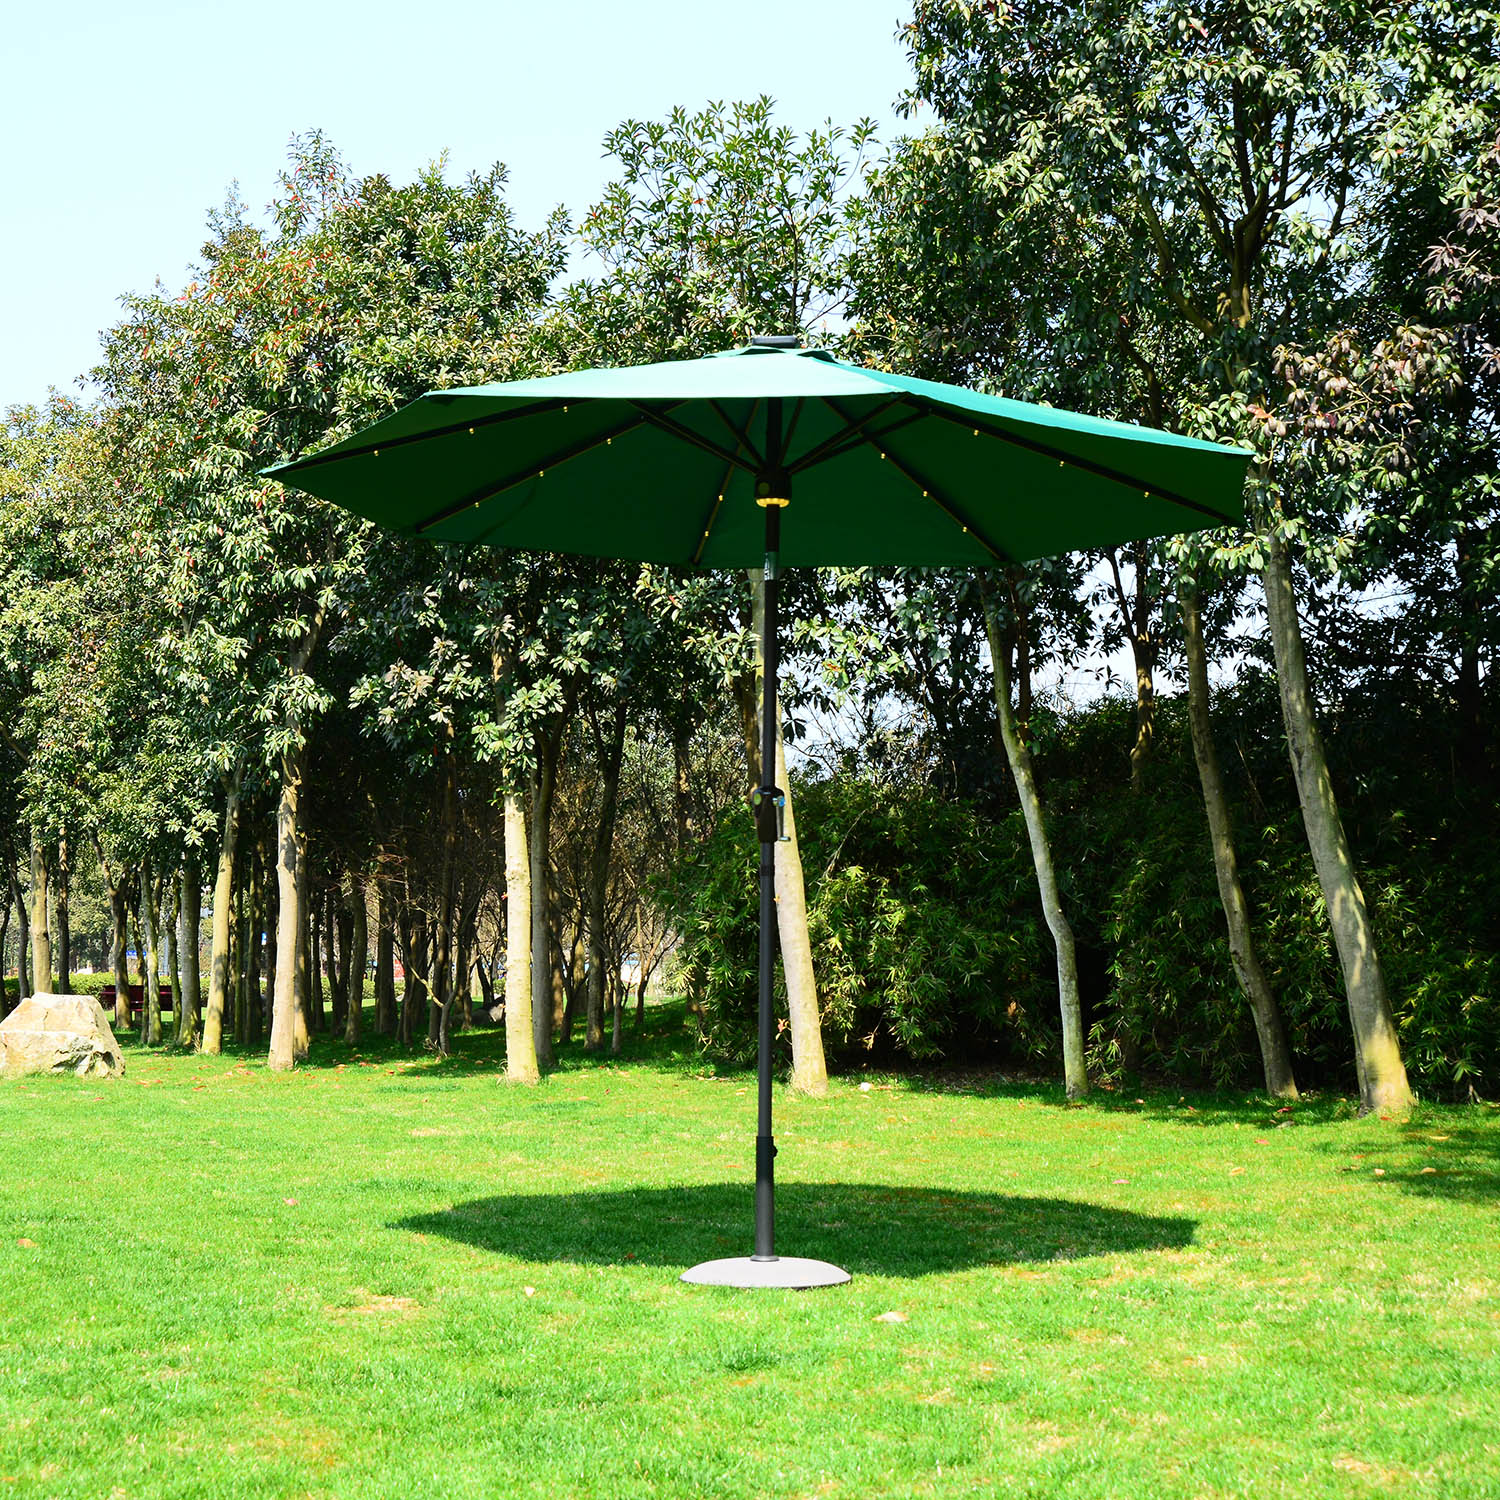 Image of EUR59,99 Sombrilla inclinable tipo Parasol con Luz LED y Altavoz - Color Verde Oscuro - Aluminio - Φ2.75x2.33m Black Friday 840-123GN 8435428715021